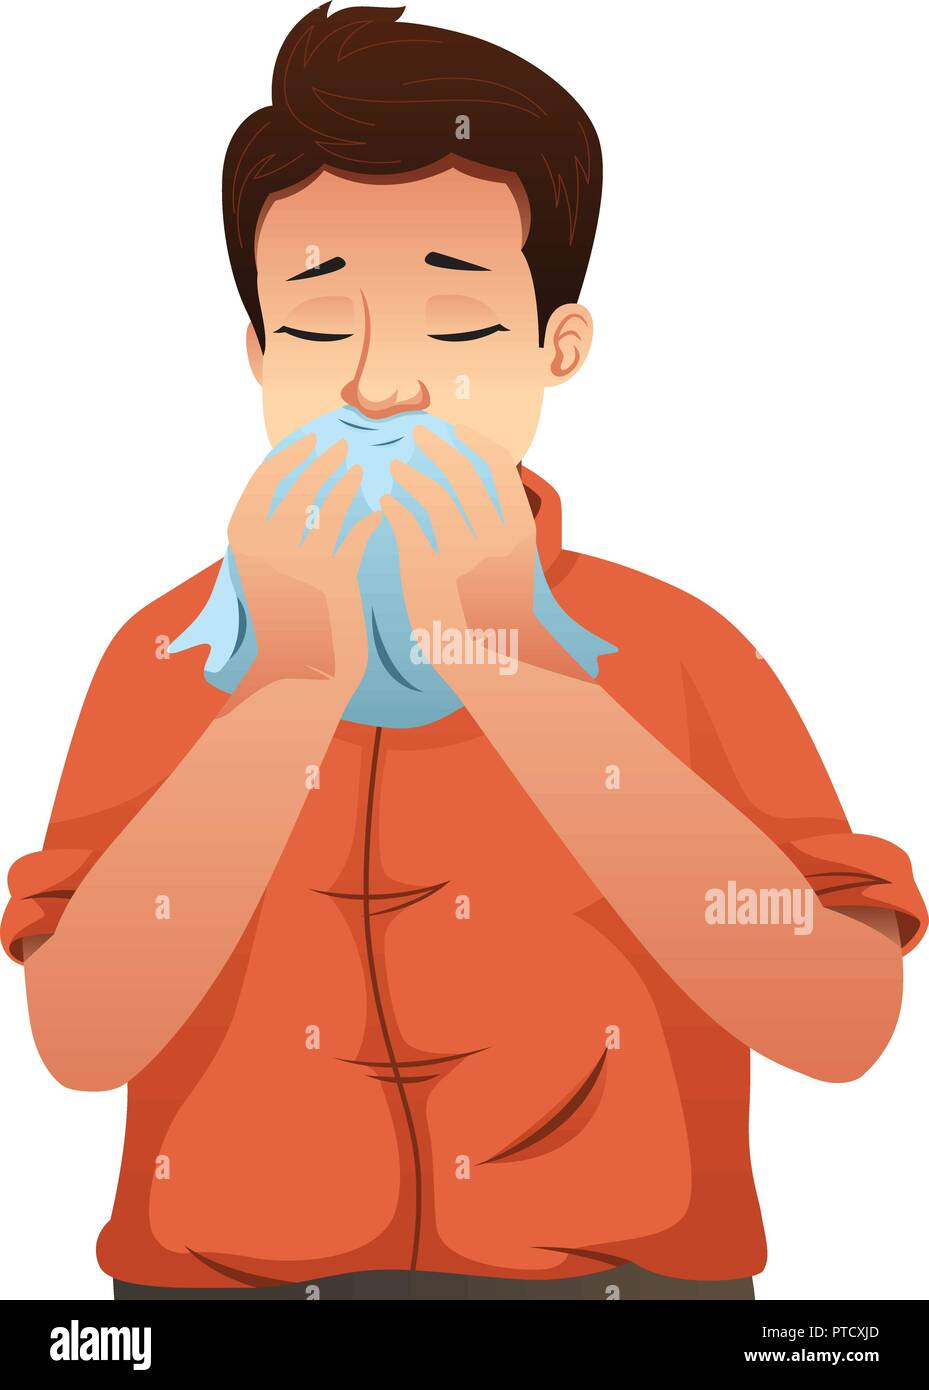 A vector illustration of Sick Man Blowing His Nose on a Tissue - Stock Vector